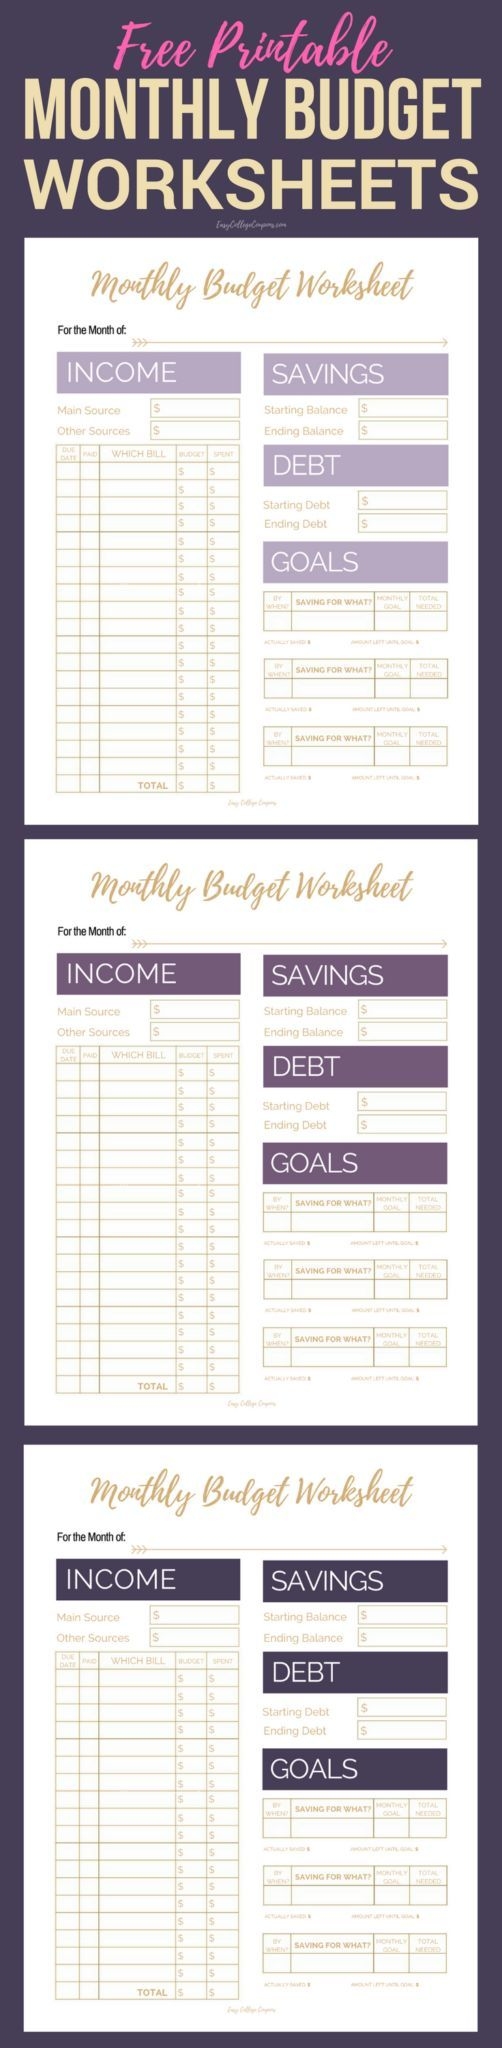 Google Budgeting Worksheets Budgeting Monthly Budget Template